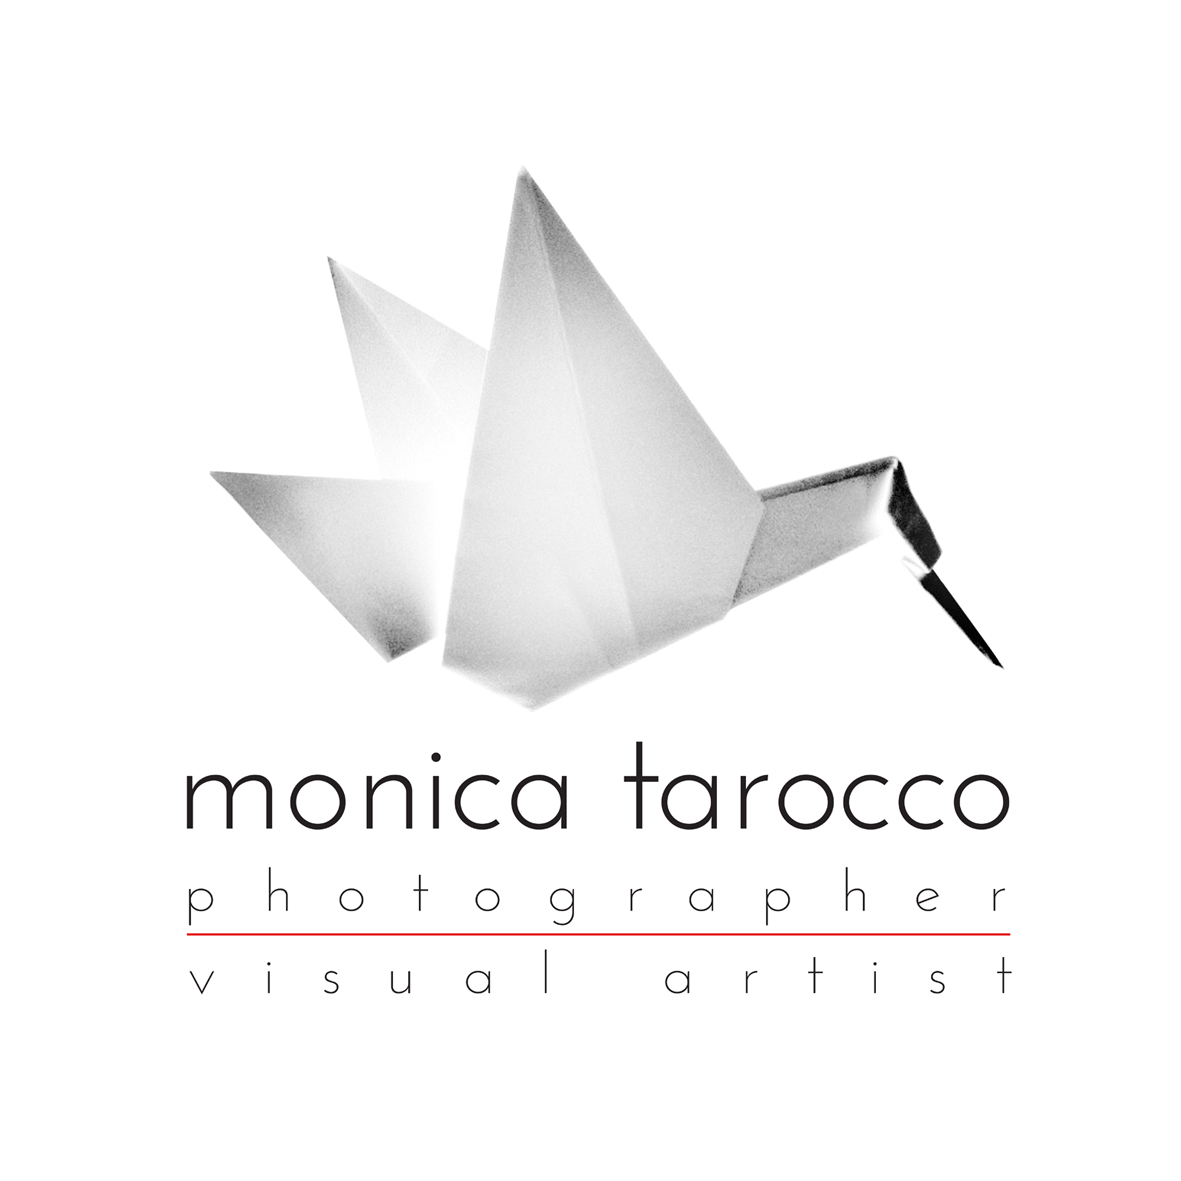 Bern, Switzerland Wedding Photographer - Monica Tarocco